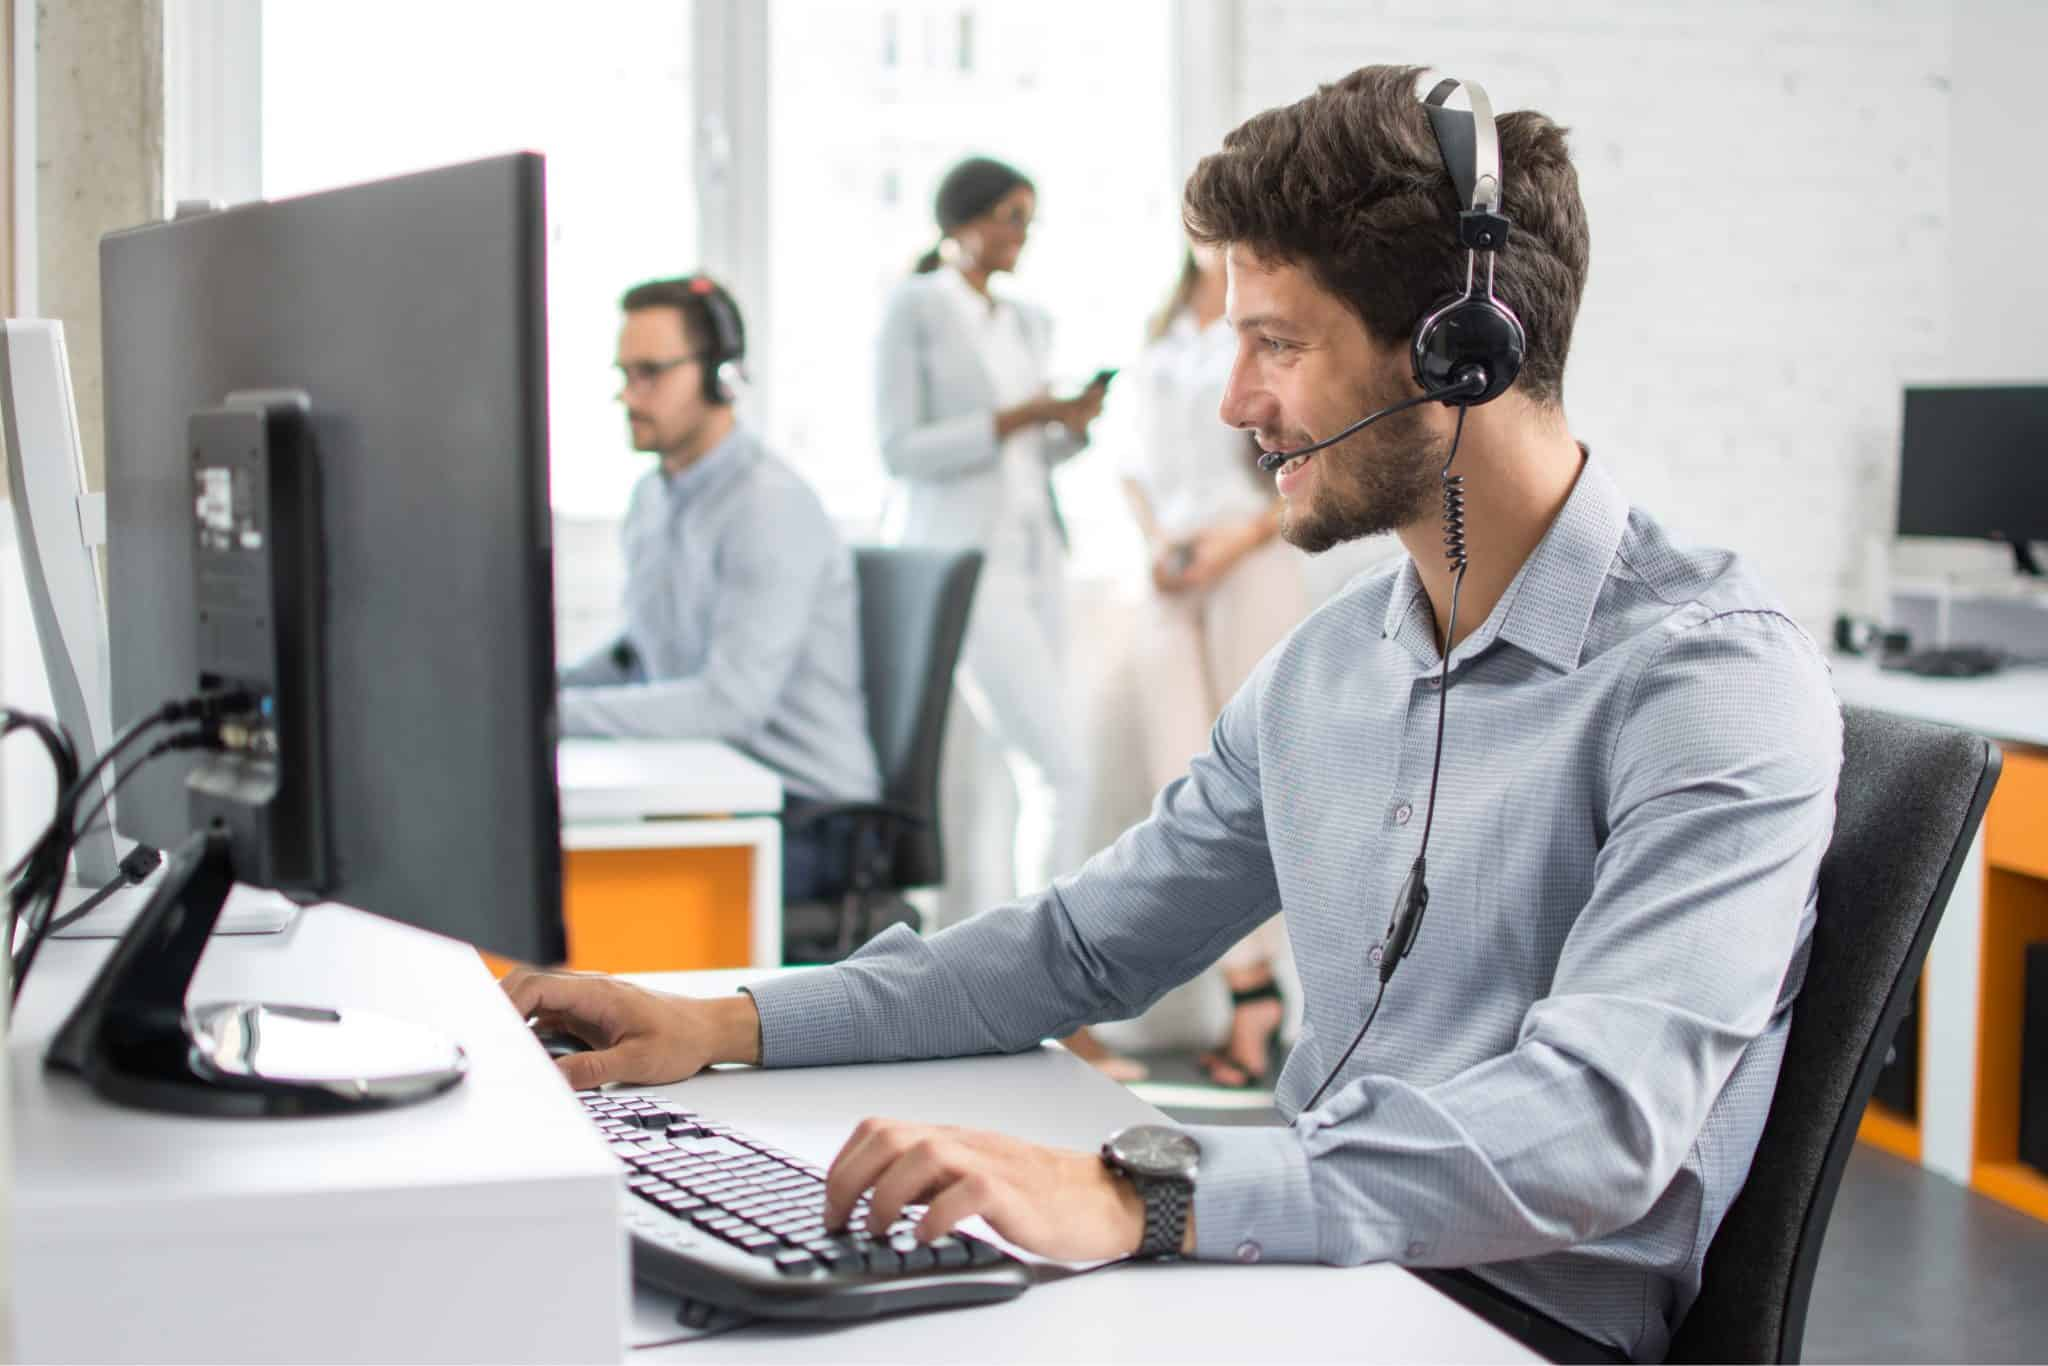 Practical tips for IT support